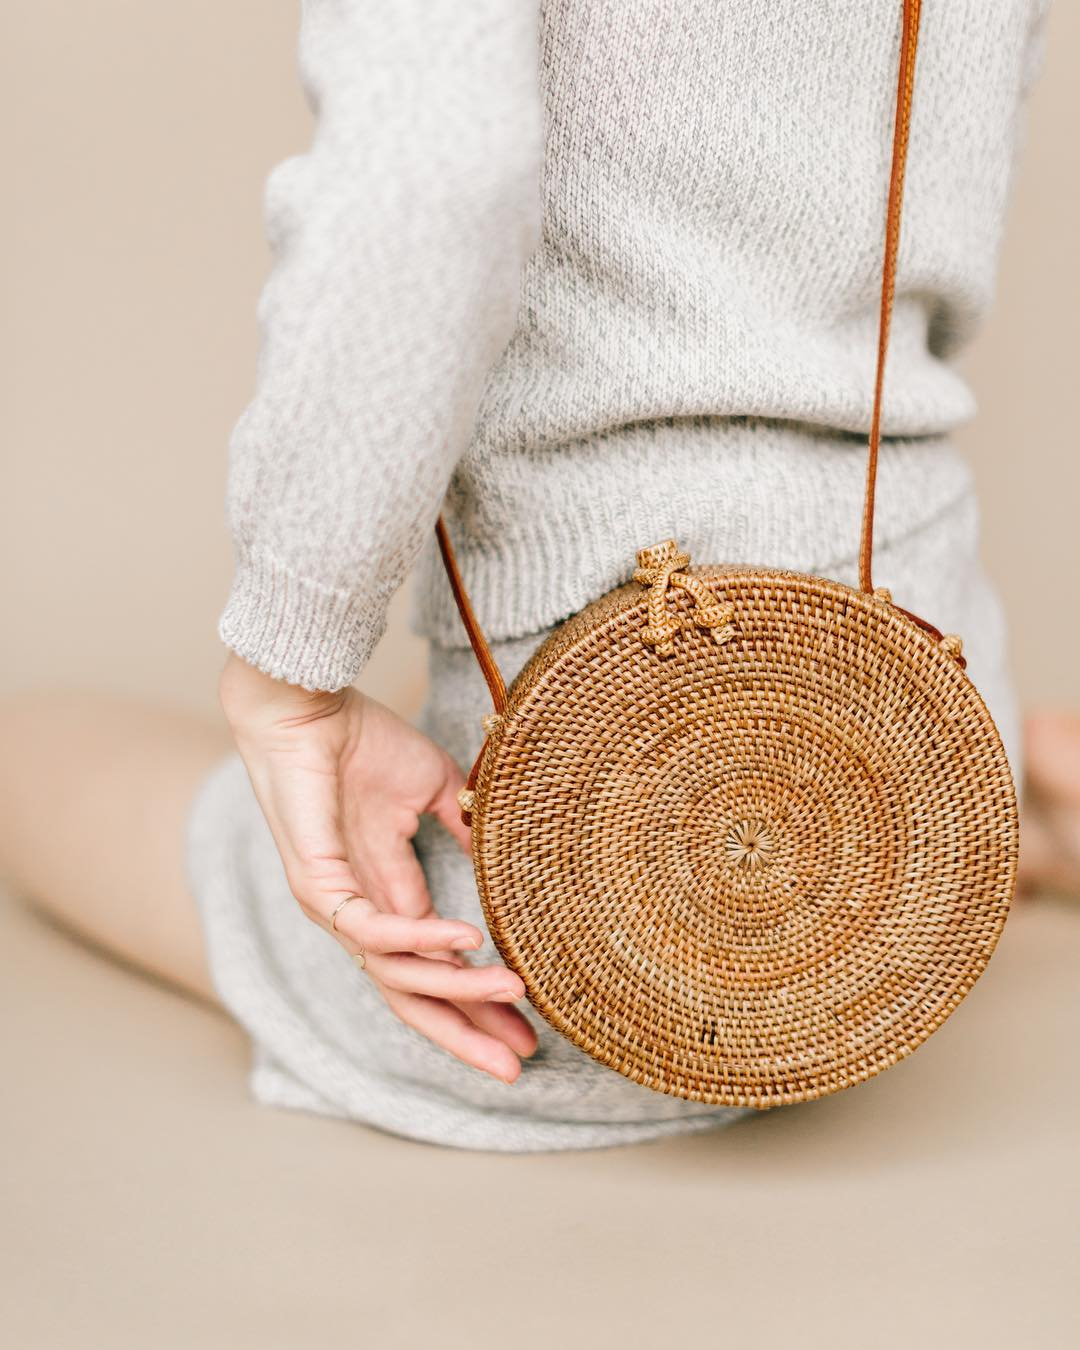 6a1a4ea2cbc2a8 (Bembien straw bags $165 – $220; images via @ashleighjparsons,  @songofstyle, @judithmarilyn_, @2ndtruth, @lucylaucht, @nicole_franzen)